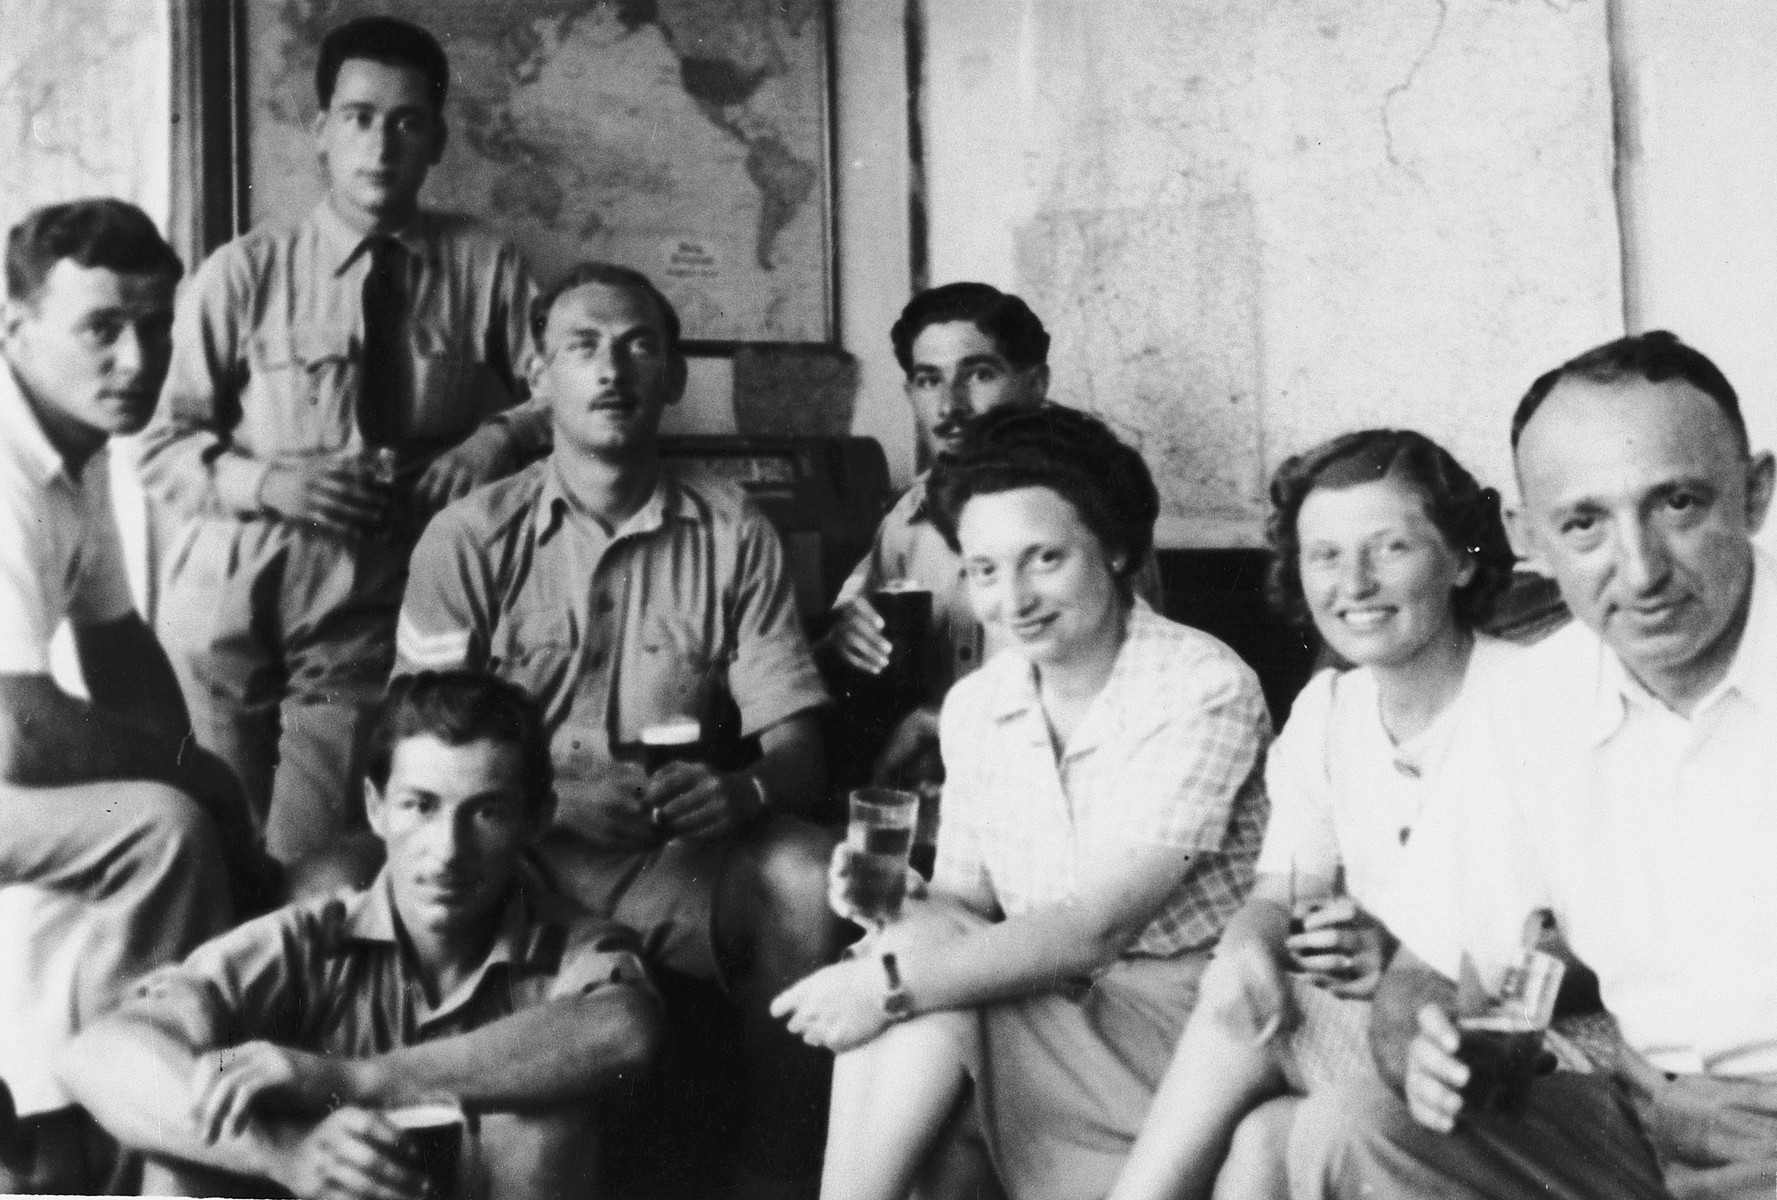 British soldiers gather in the apartment of Ruth and Heinrich Weyl to listen to war news on their radio.